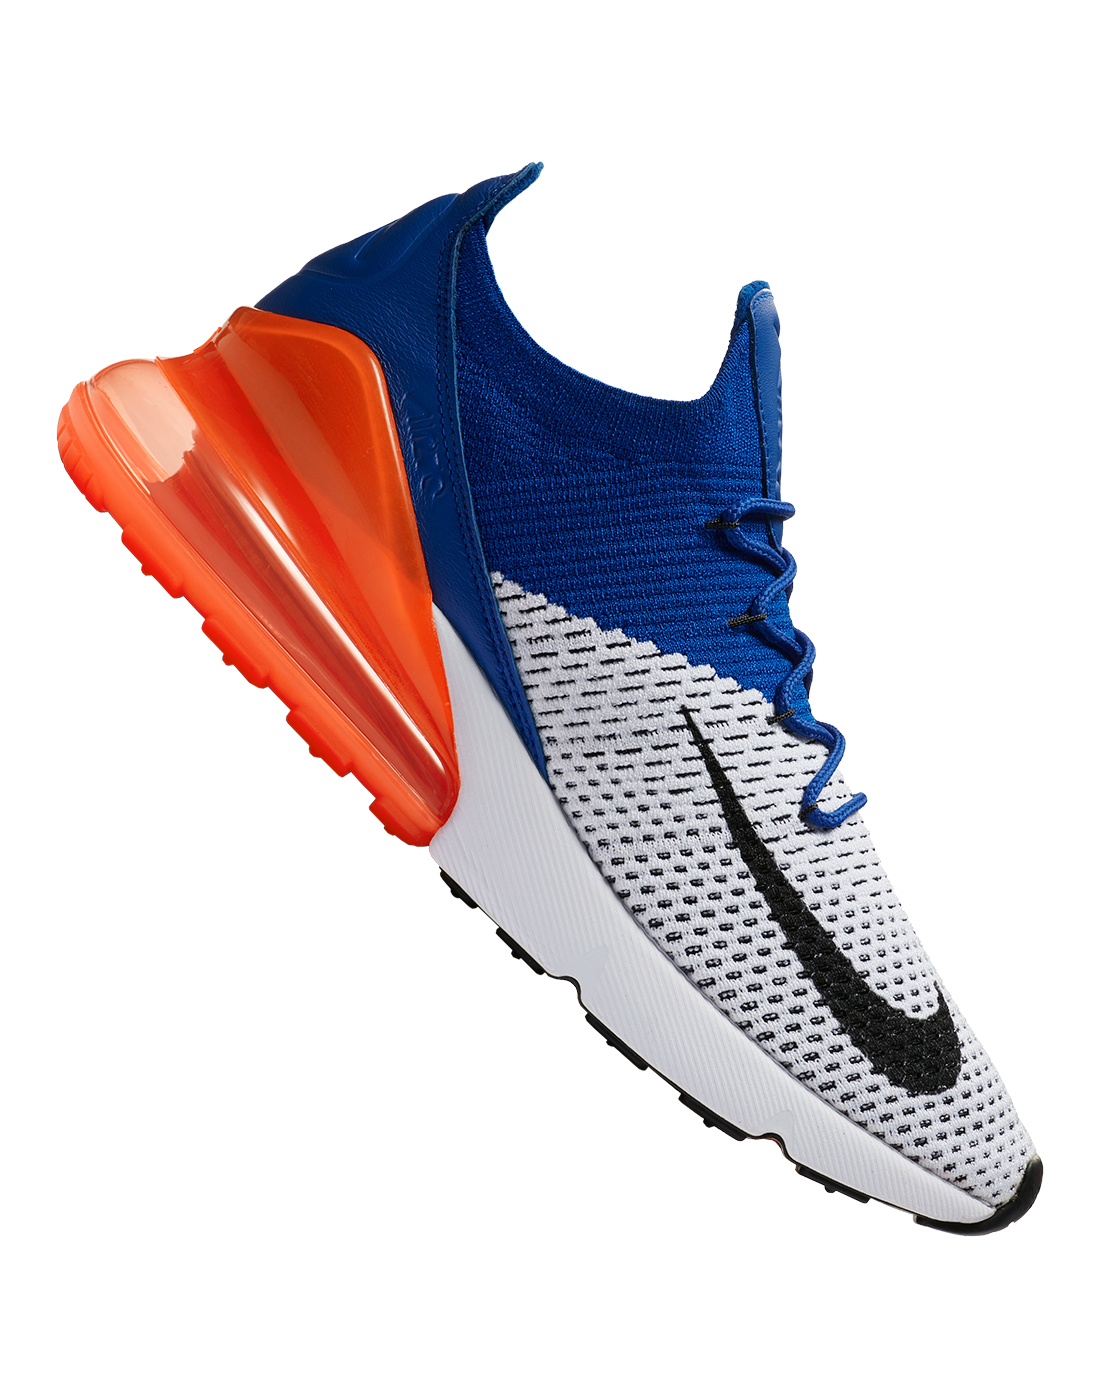 c77b6719f0a32 Men s White Nike Air Max 270 Flyknit